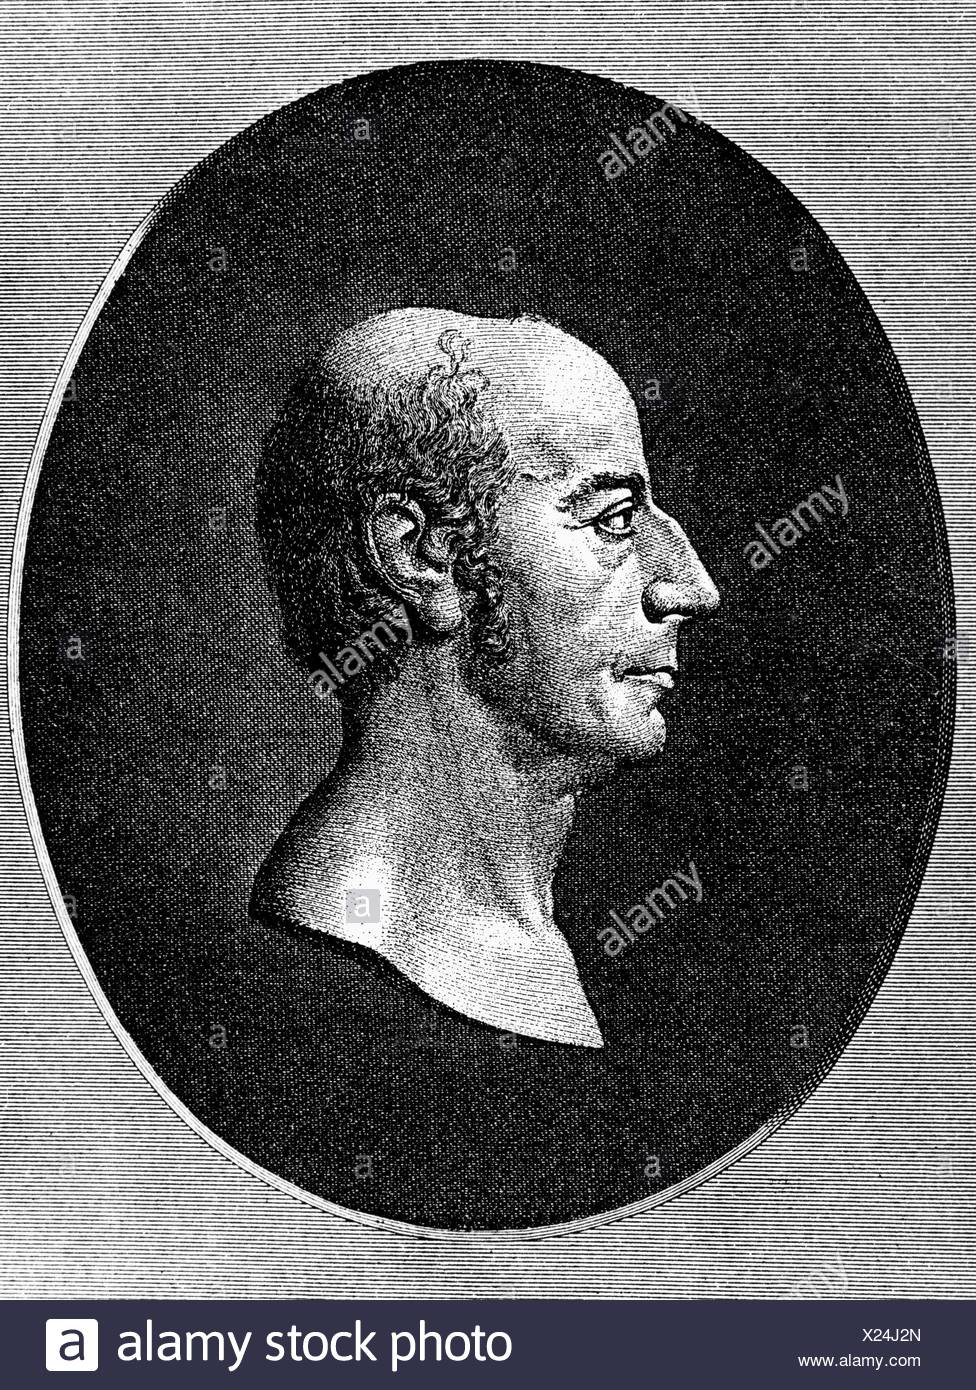 Jung-Stilling, Johann Heinrich 12.9.1740 - 2.4.1817, German author / writer, physician, teacher, portrait, copper engraving by A. Kessler after relief by v. Dannecker, facsimile, Artist's Copyright has not to be cleared - Stock Image